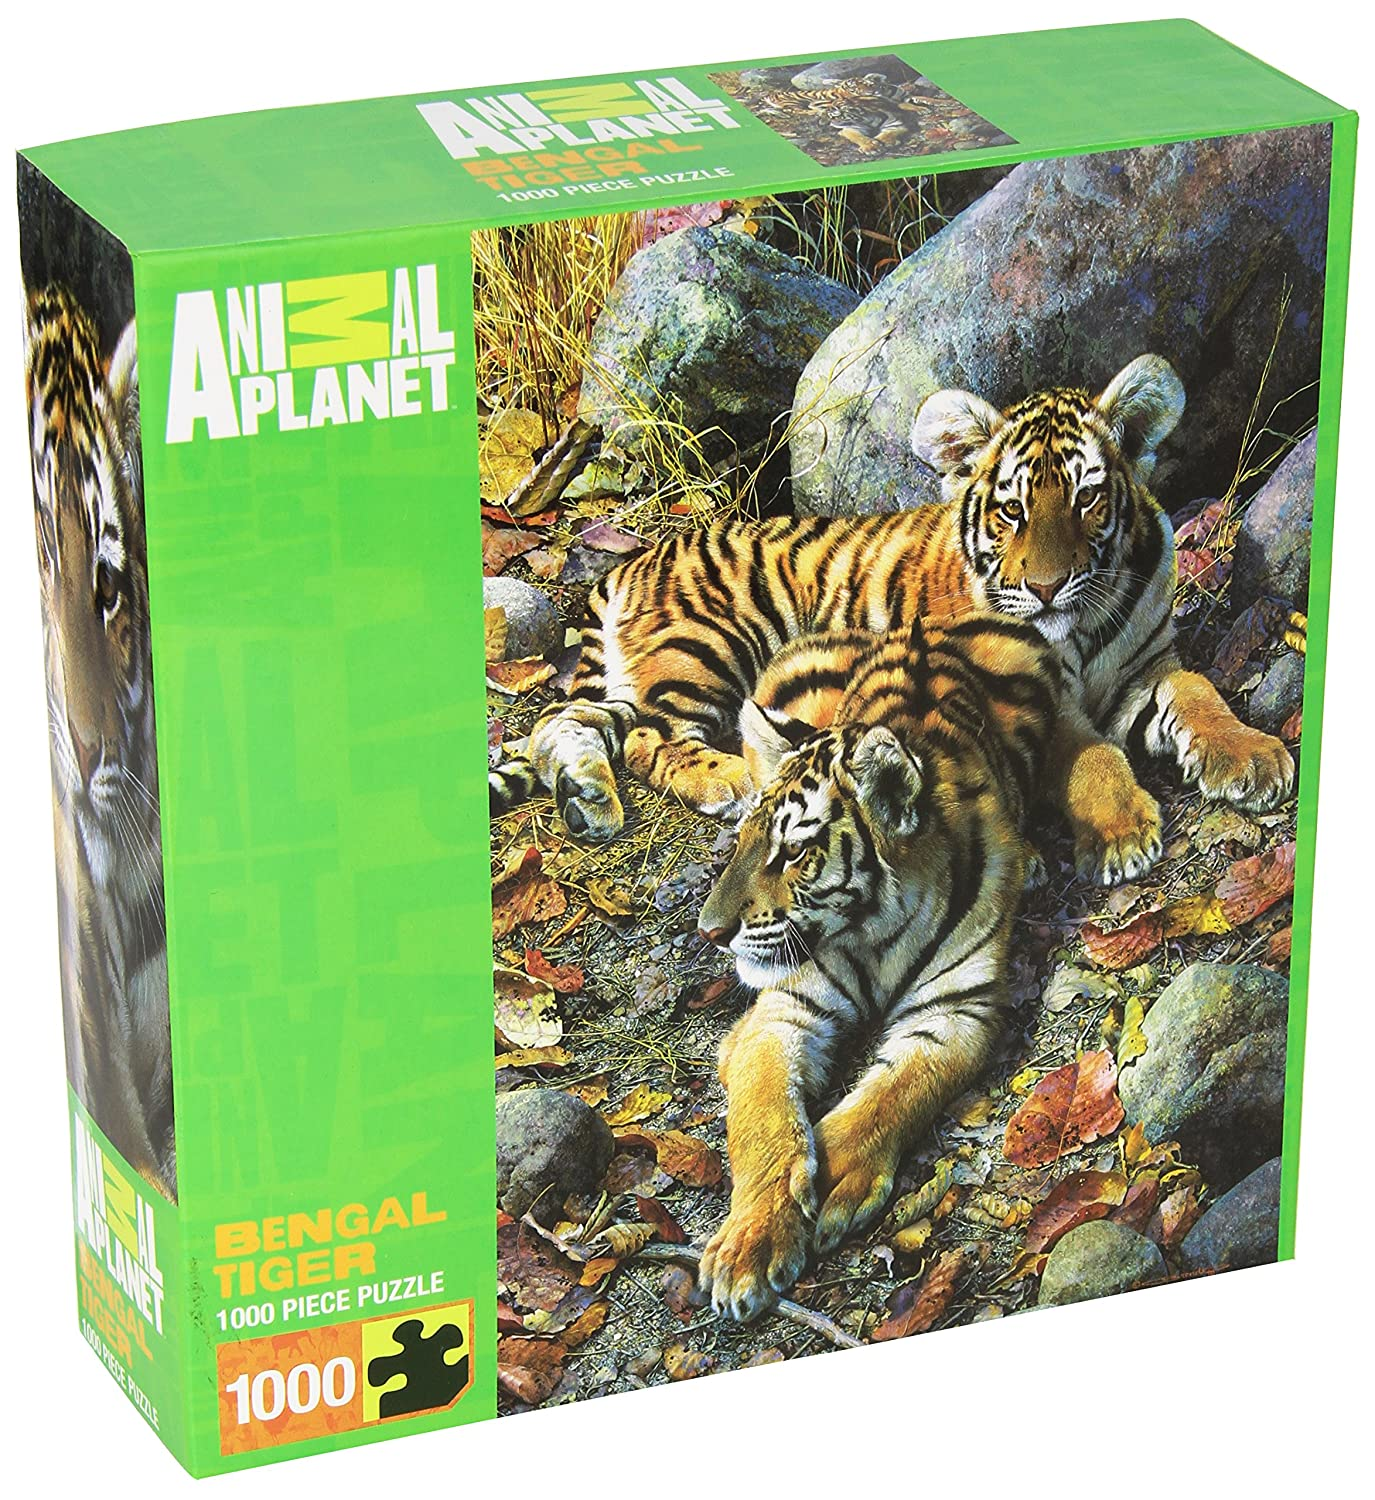 Standard Packaging MasterPieces Animal Planet Bengal Tiger Jigsaw Puzzle, 1000Piece